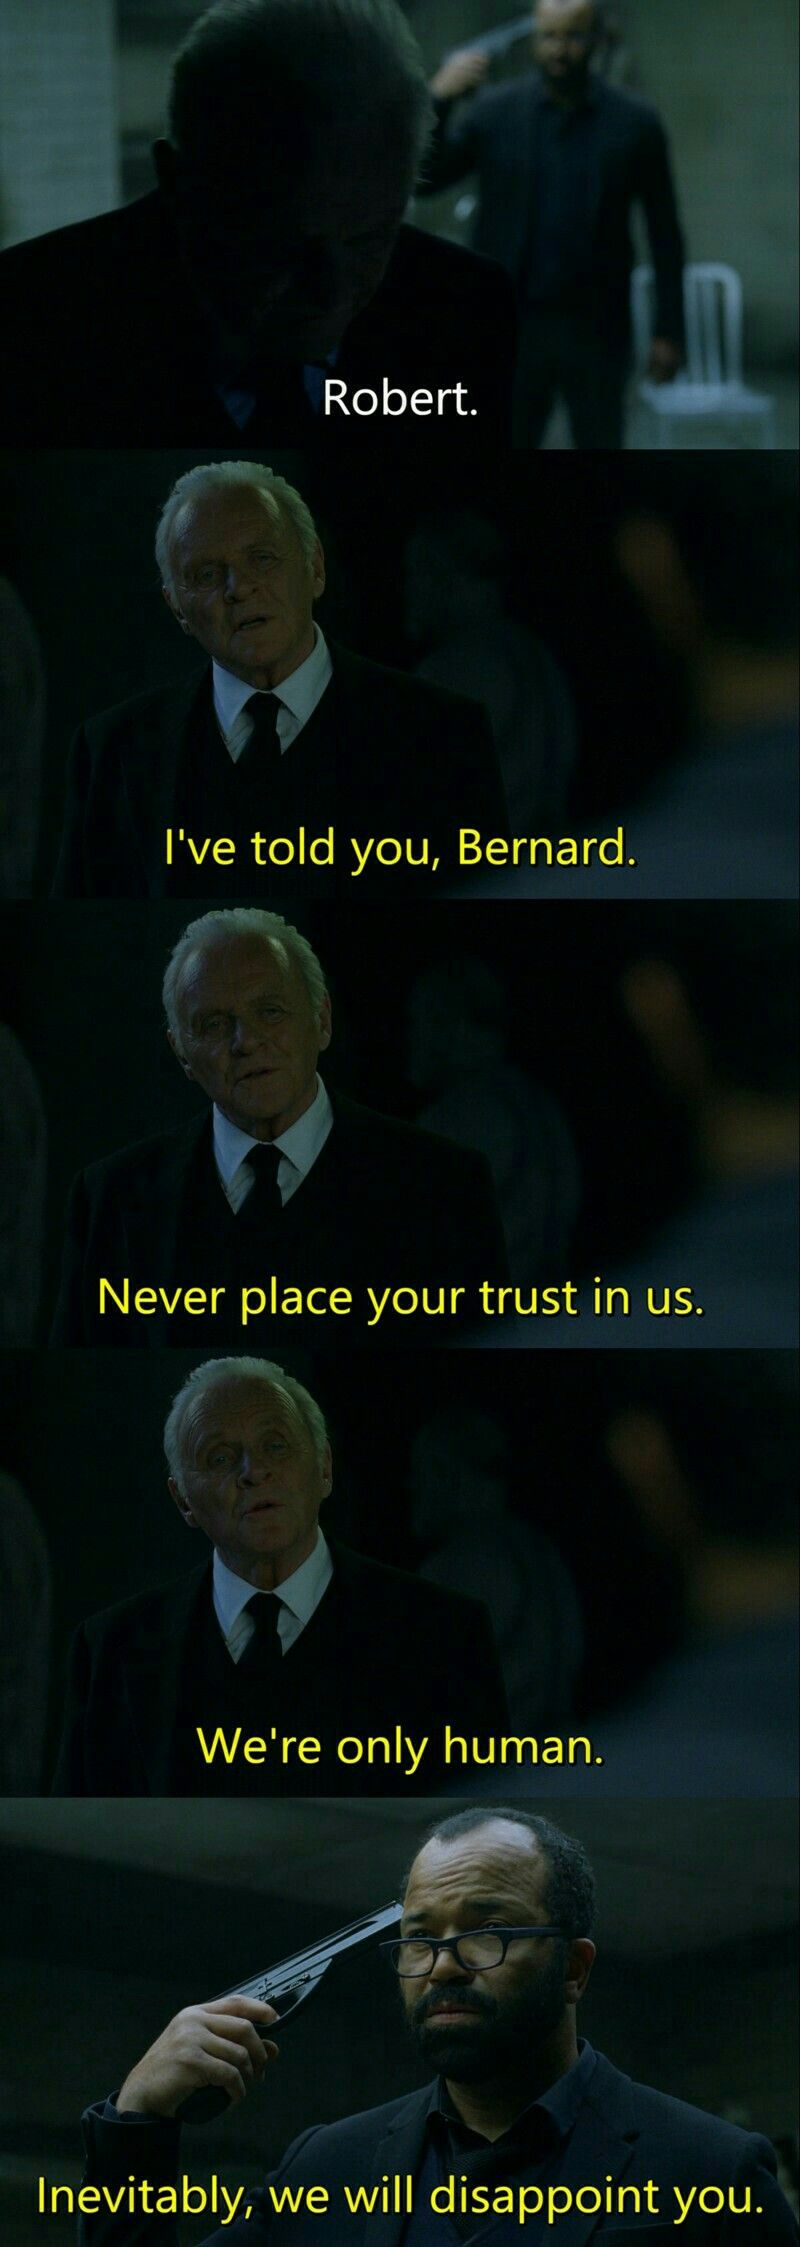 I Ve Told You Bernard Never Place Your Trust In Us We Re Only